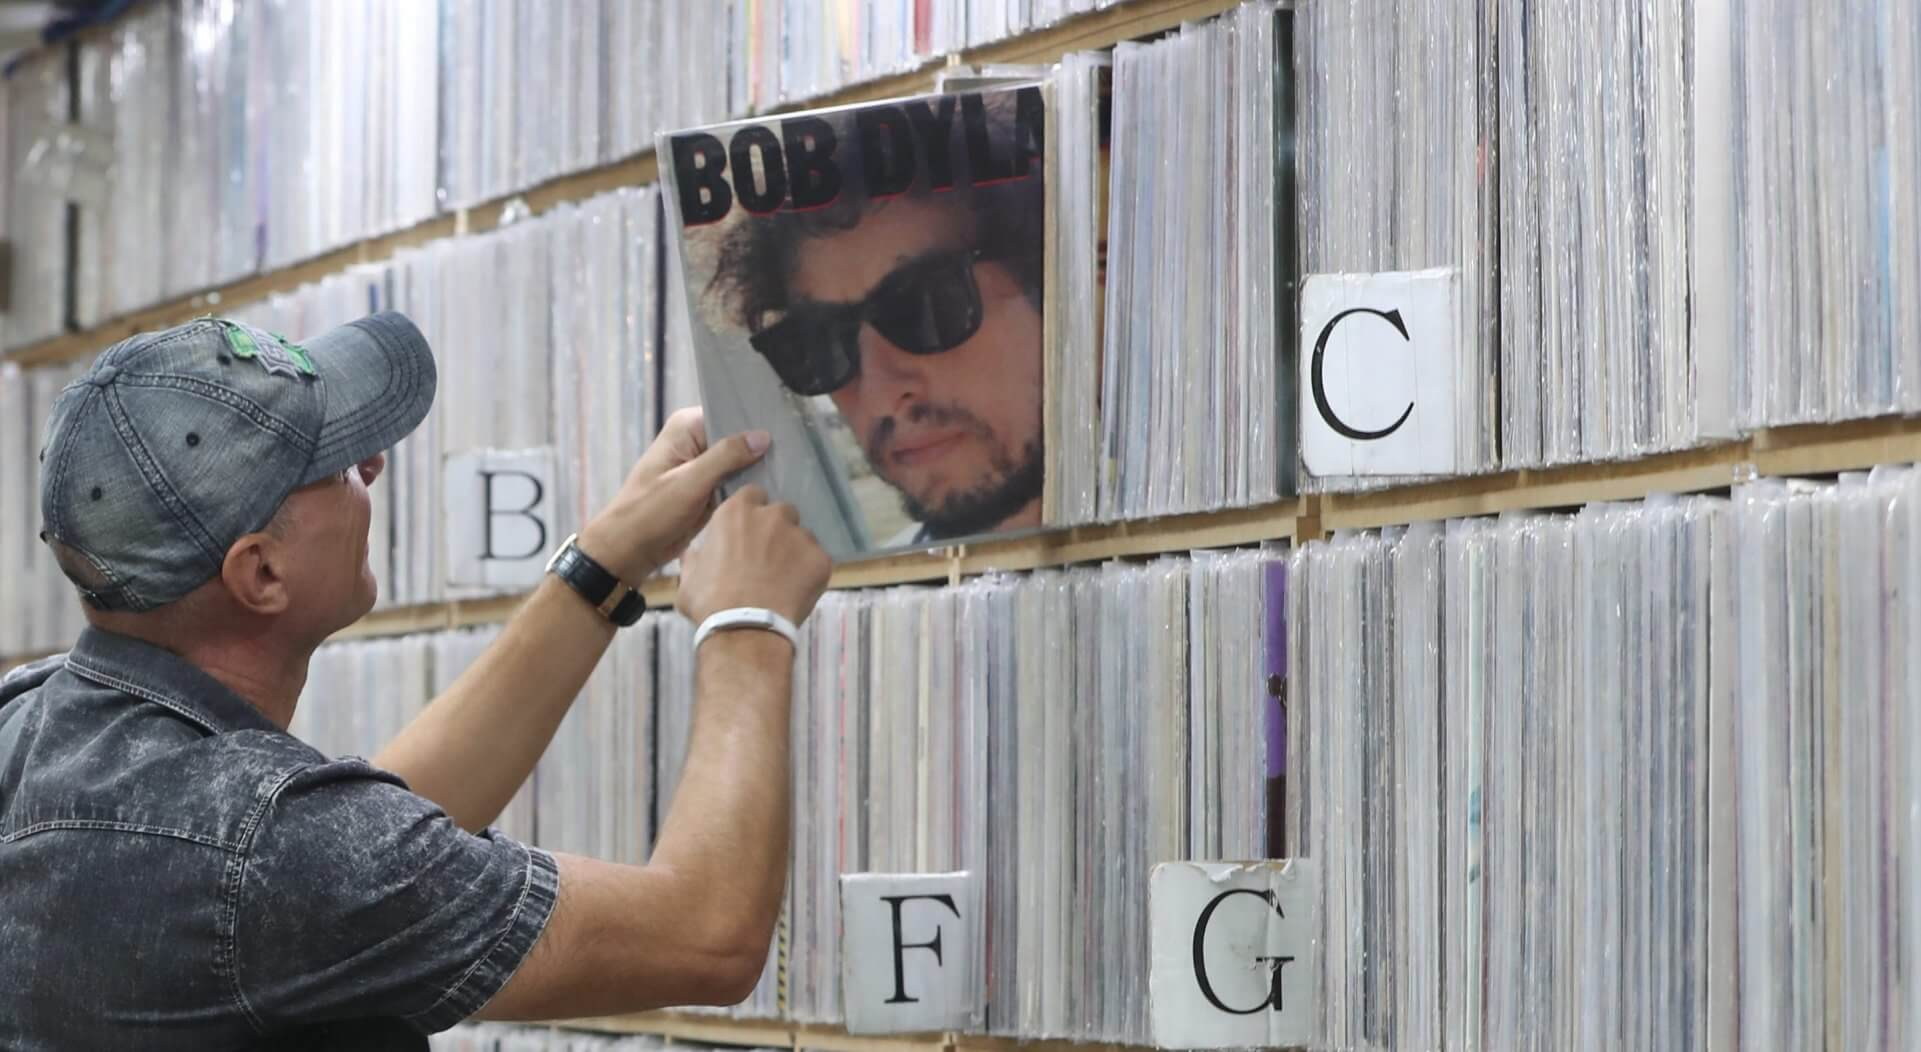 Mandatory Credit: Photo by Yonhap/EPA/Shutterstock (8368141a)A Customer Looks at a Bob Dylan Album at a Record Shop in Seoul South Korea 14 October 2016 Dylan's 'Knockin' on Heaven's Door' Placed Third on the Top 100 Chart For Foreign Songs on the Nation's Largest Portal Naver when the News of the Us Singer-songwriter Winning the Nobel Literature Prize Hit the Nation Korea, Republic of SeoulSouth Korea Music Bob Dylan - Oct 2016.